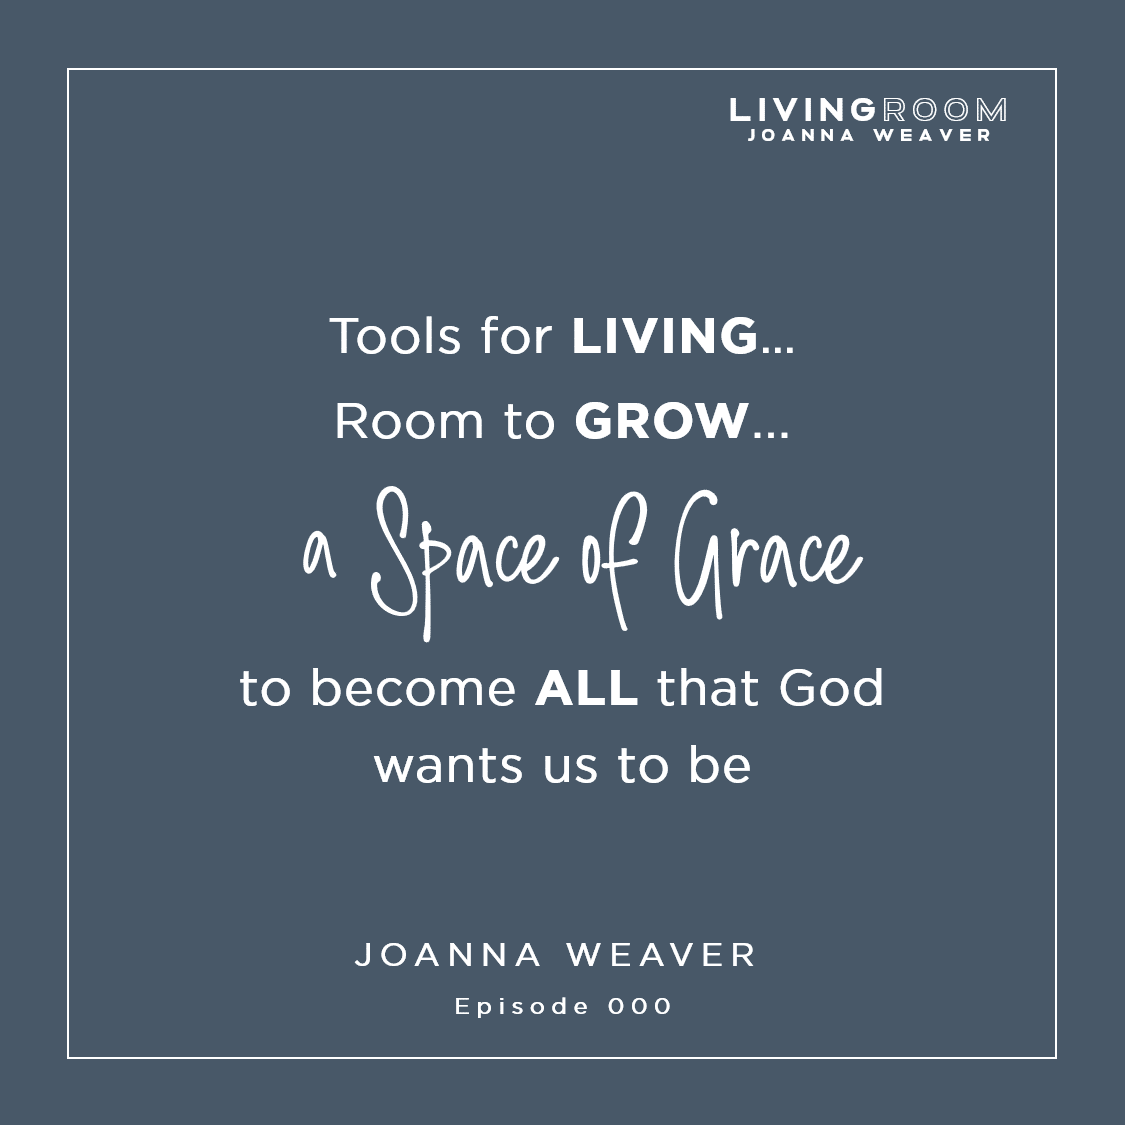 TLR 000 - Quote - A Space of Grace